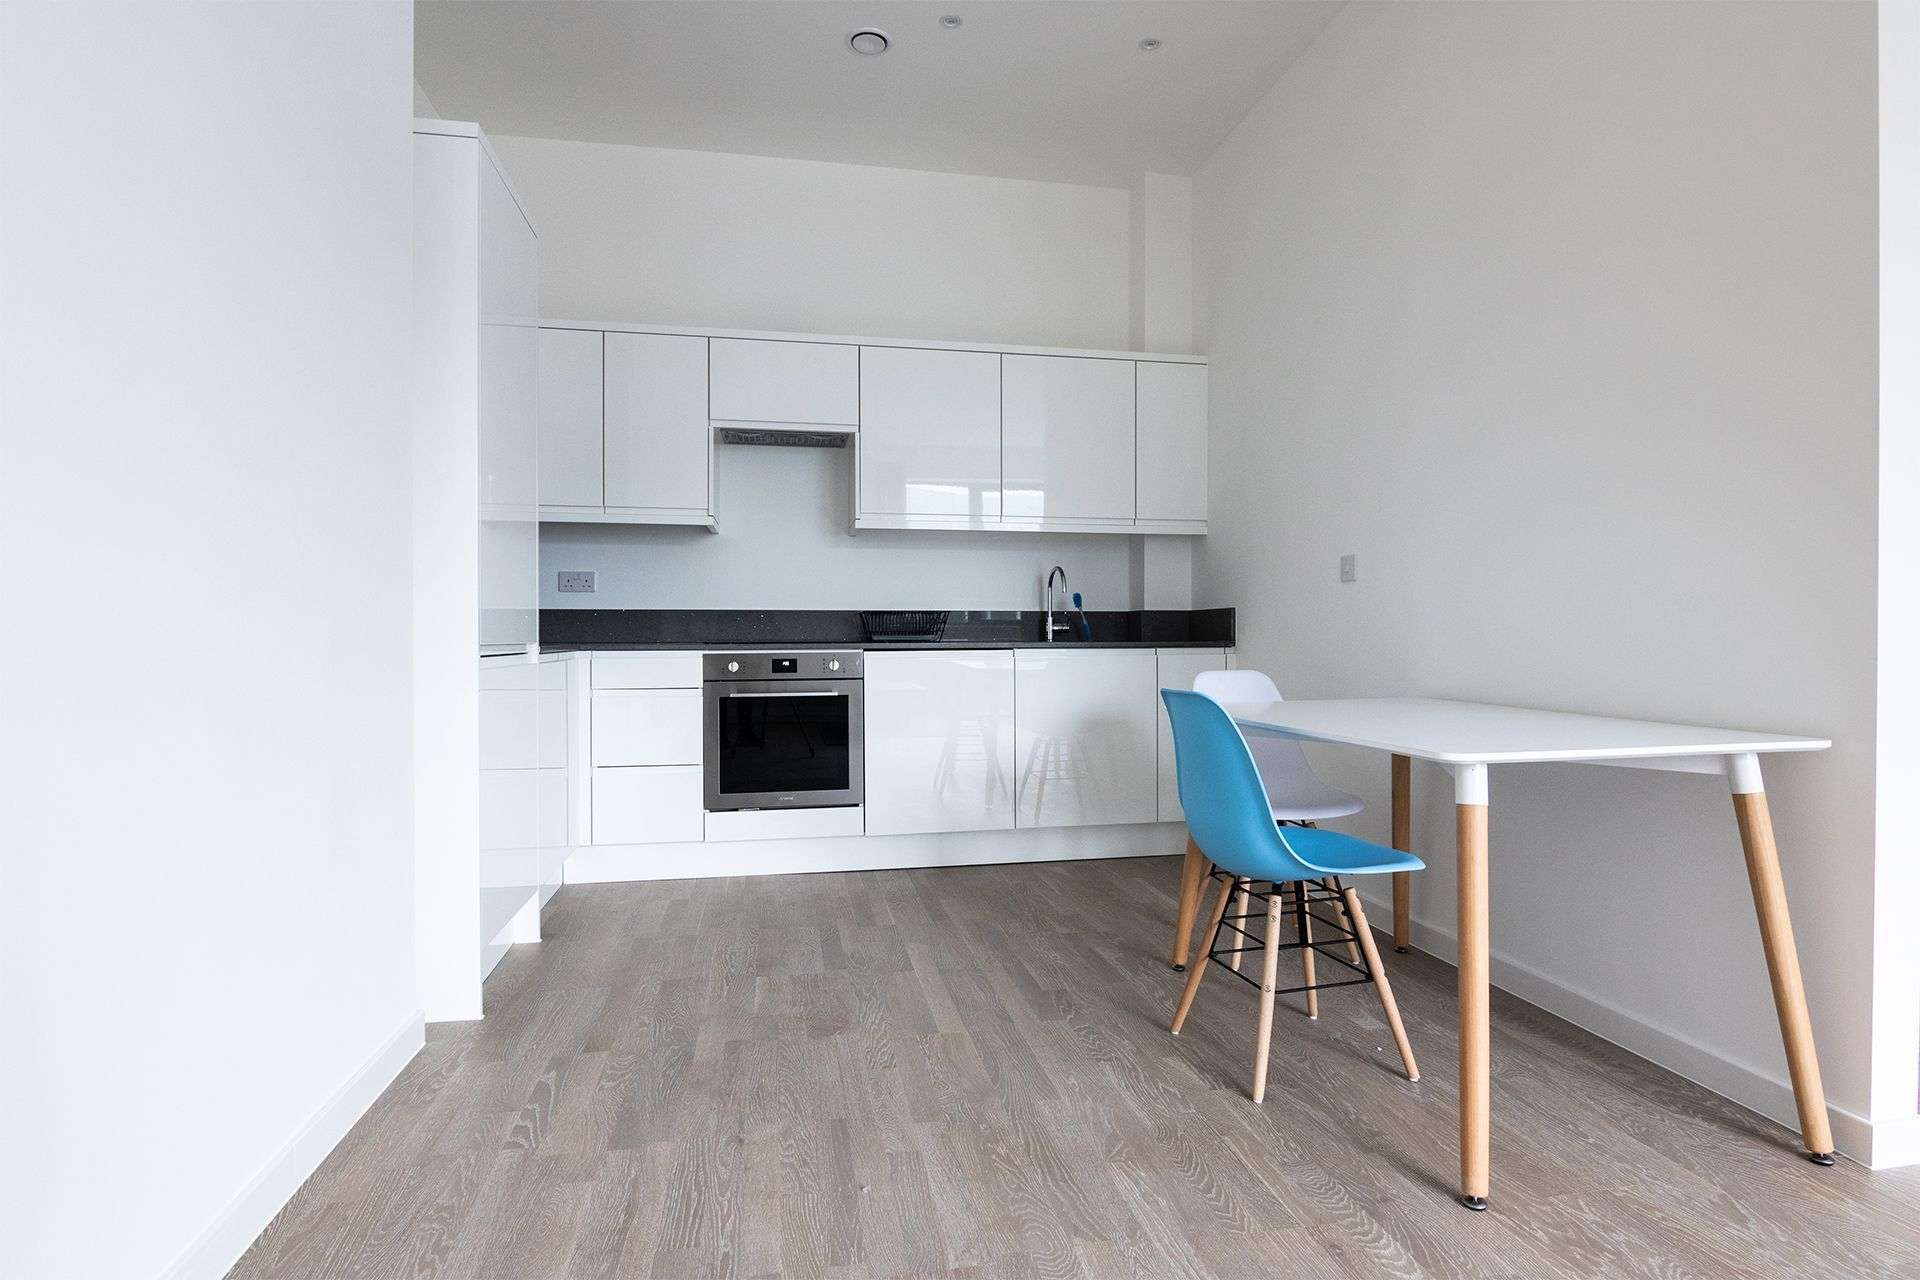 1 Bedroom apartment to rent in London VIL-SA-0007